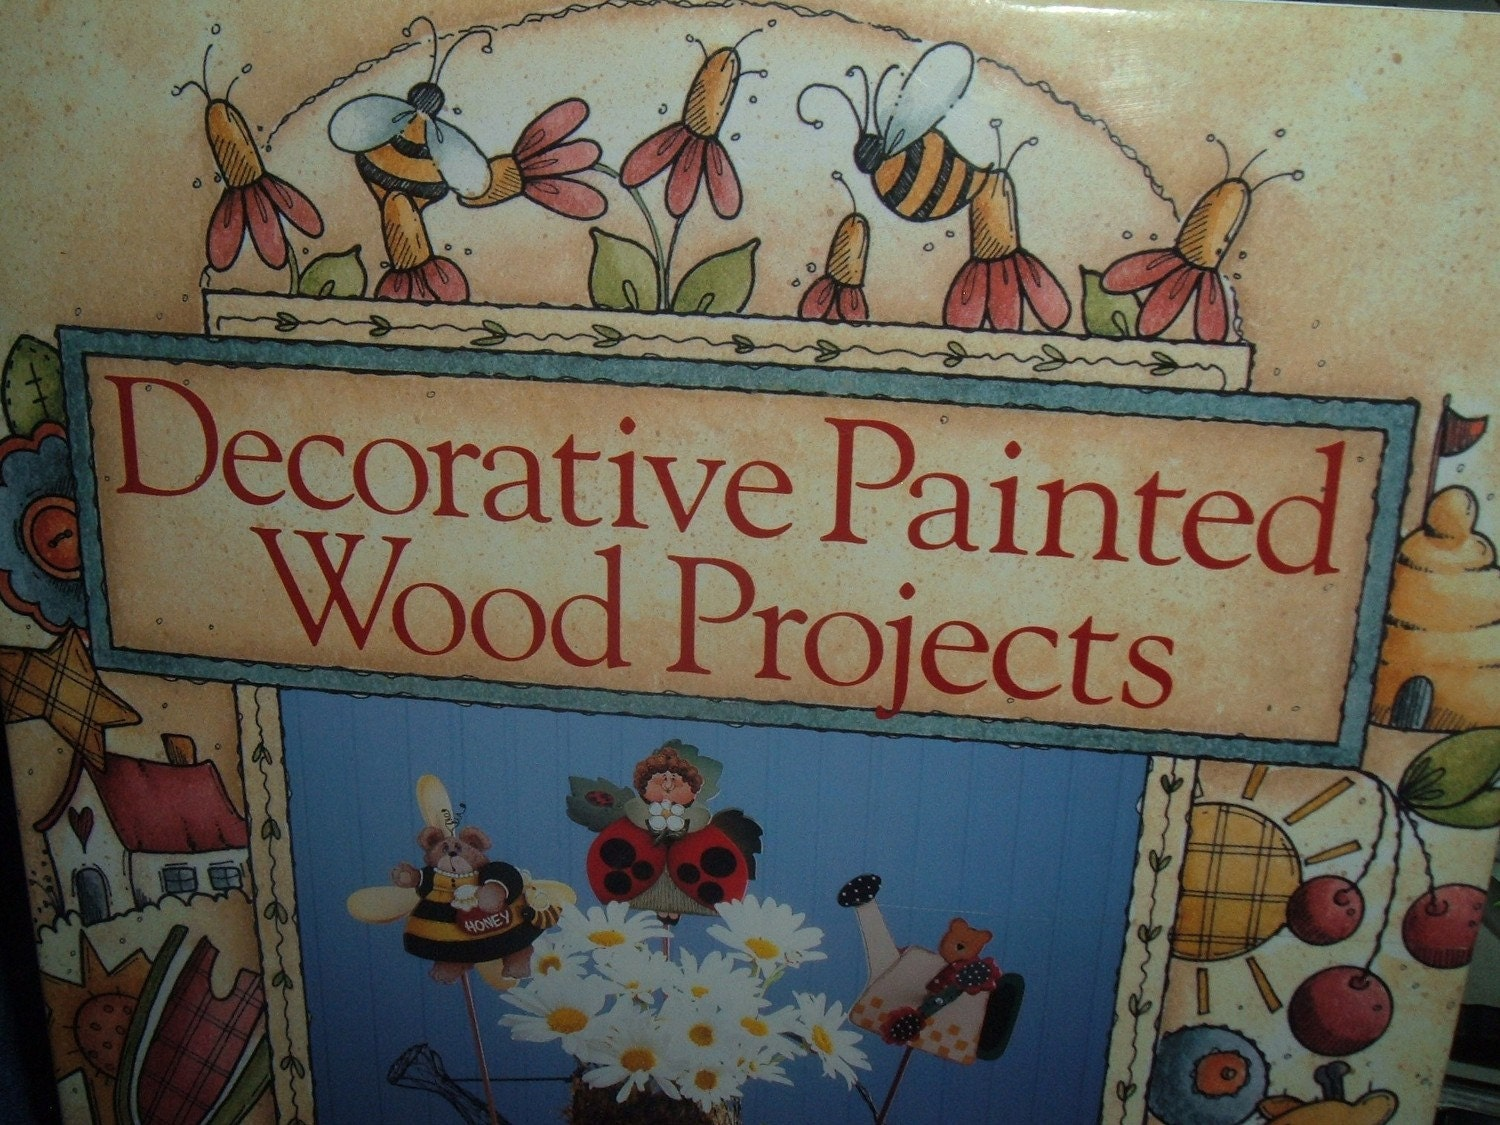 Decorative painted wood projects tole painting book for Wood craft painting ideas